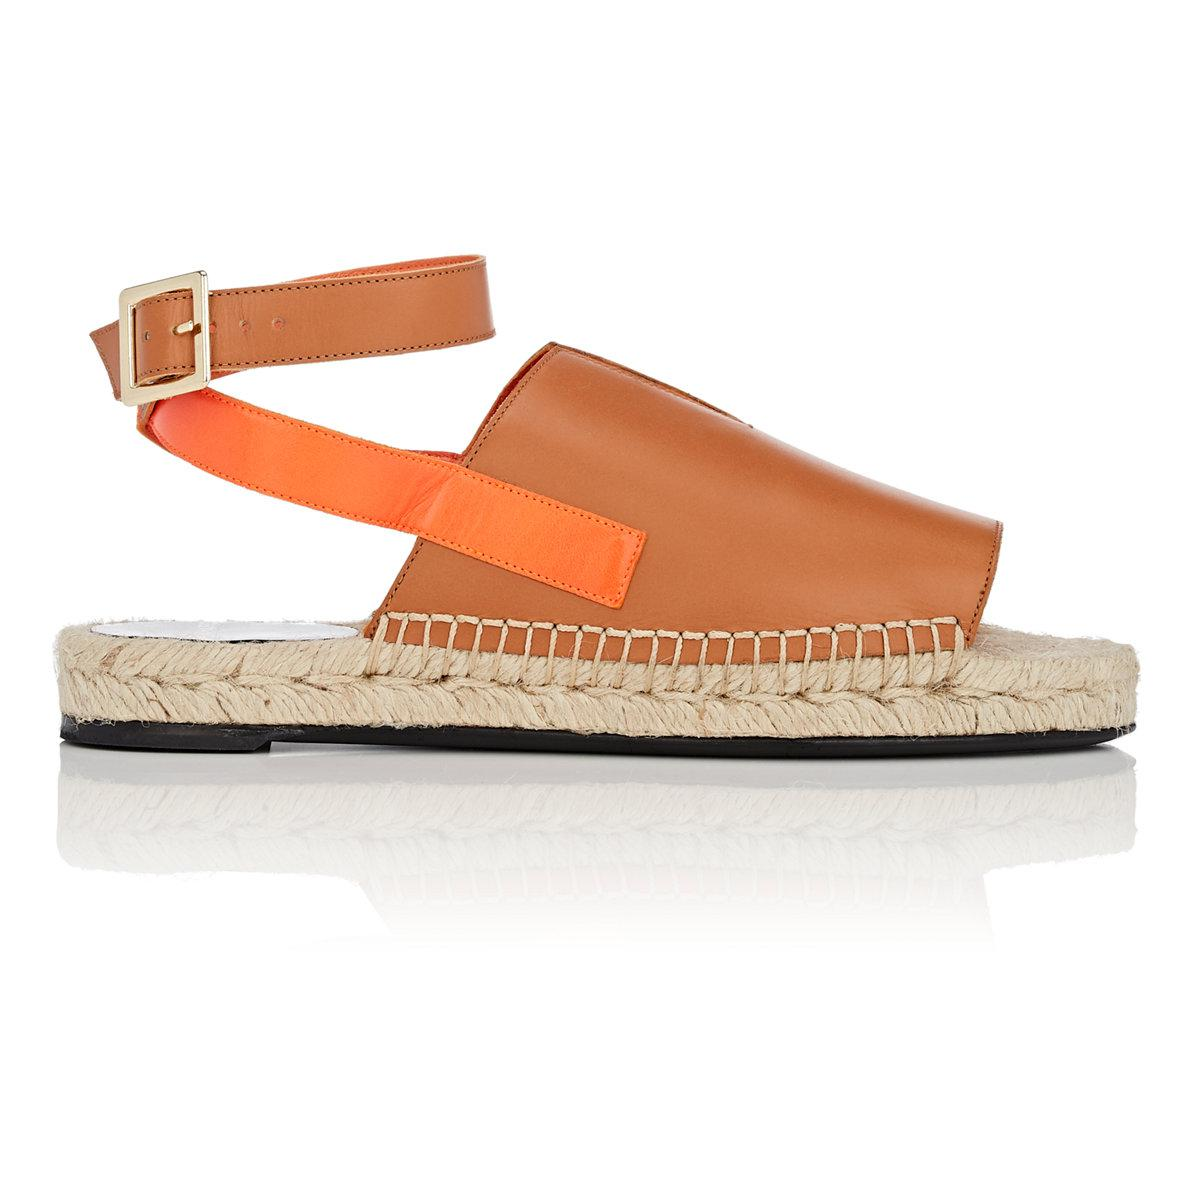 Pierre Hardy Studded Suede Mules wholesale price online outlet ebay sale outlet locations collections online exclusive online vCzvuyrz6p